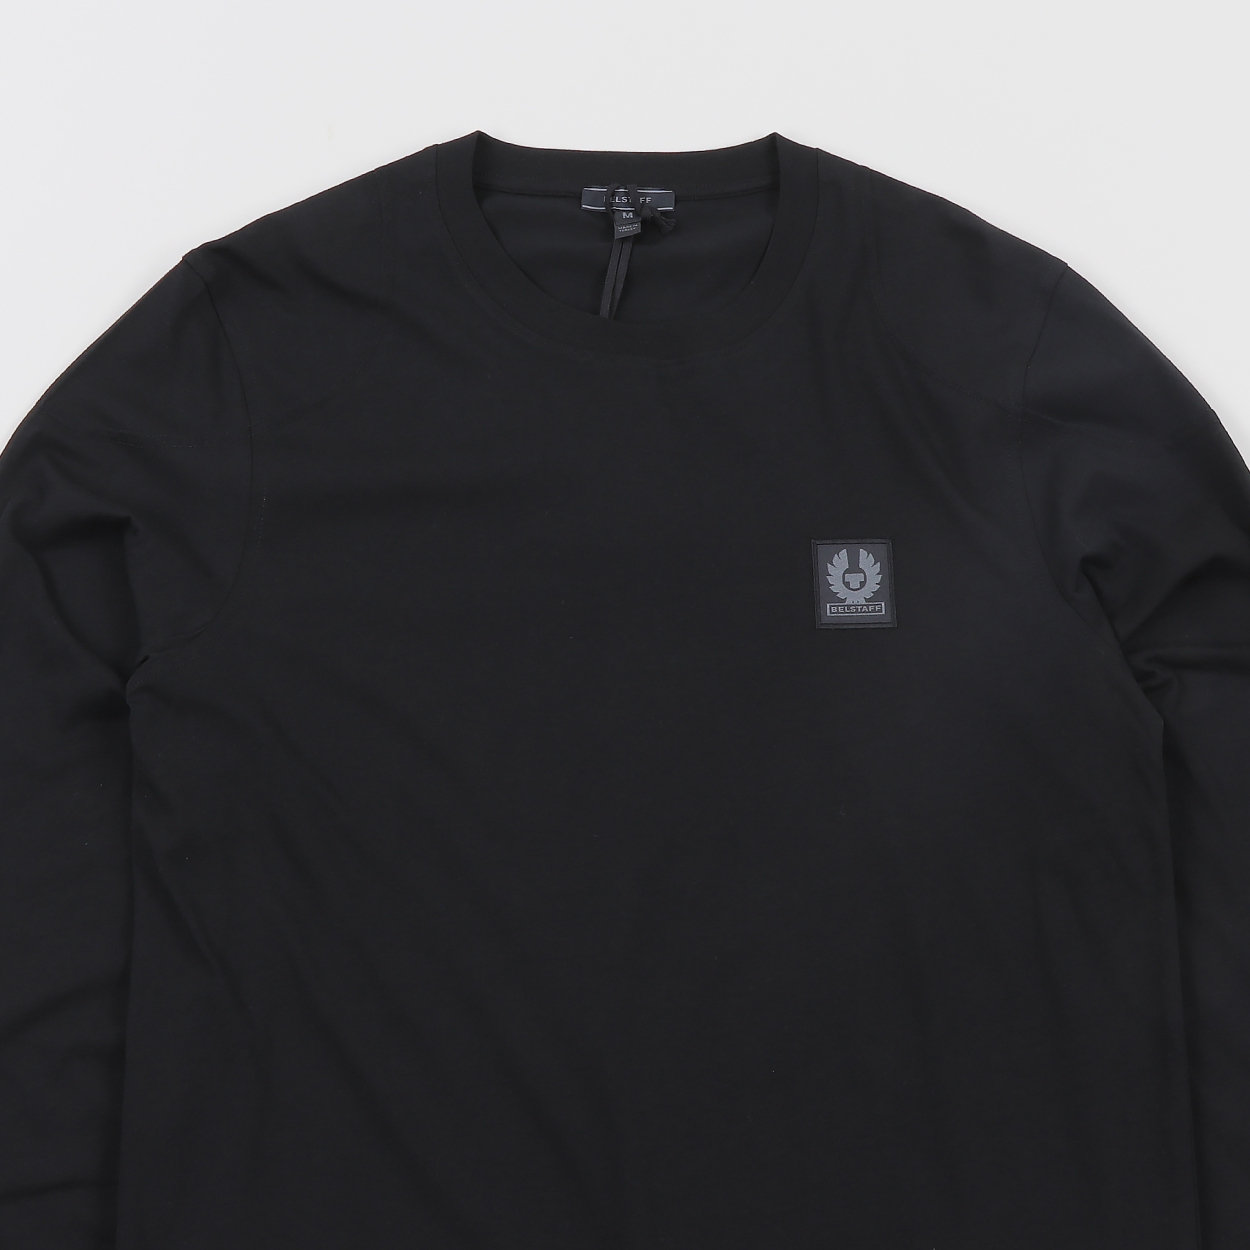 318c8807e2c0 A long sleeved tee from England s premium outerwear company Belstaff. Made  from 100% cotton in a soft single jersey